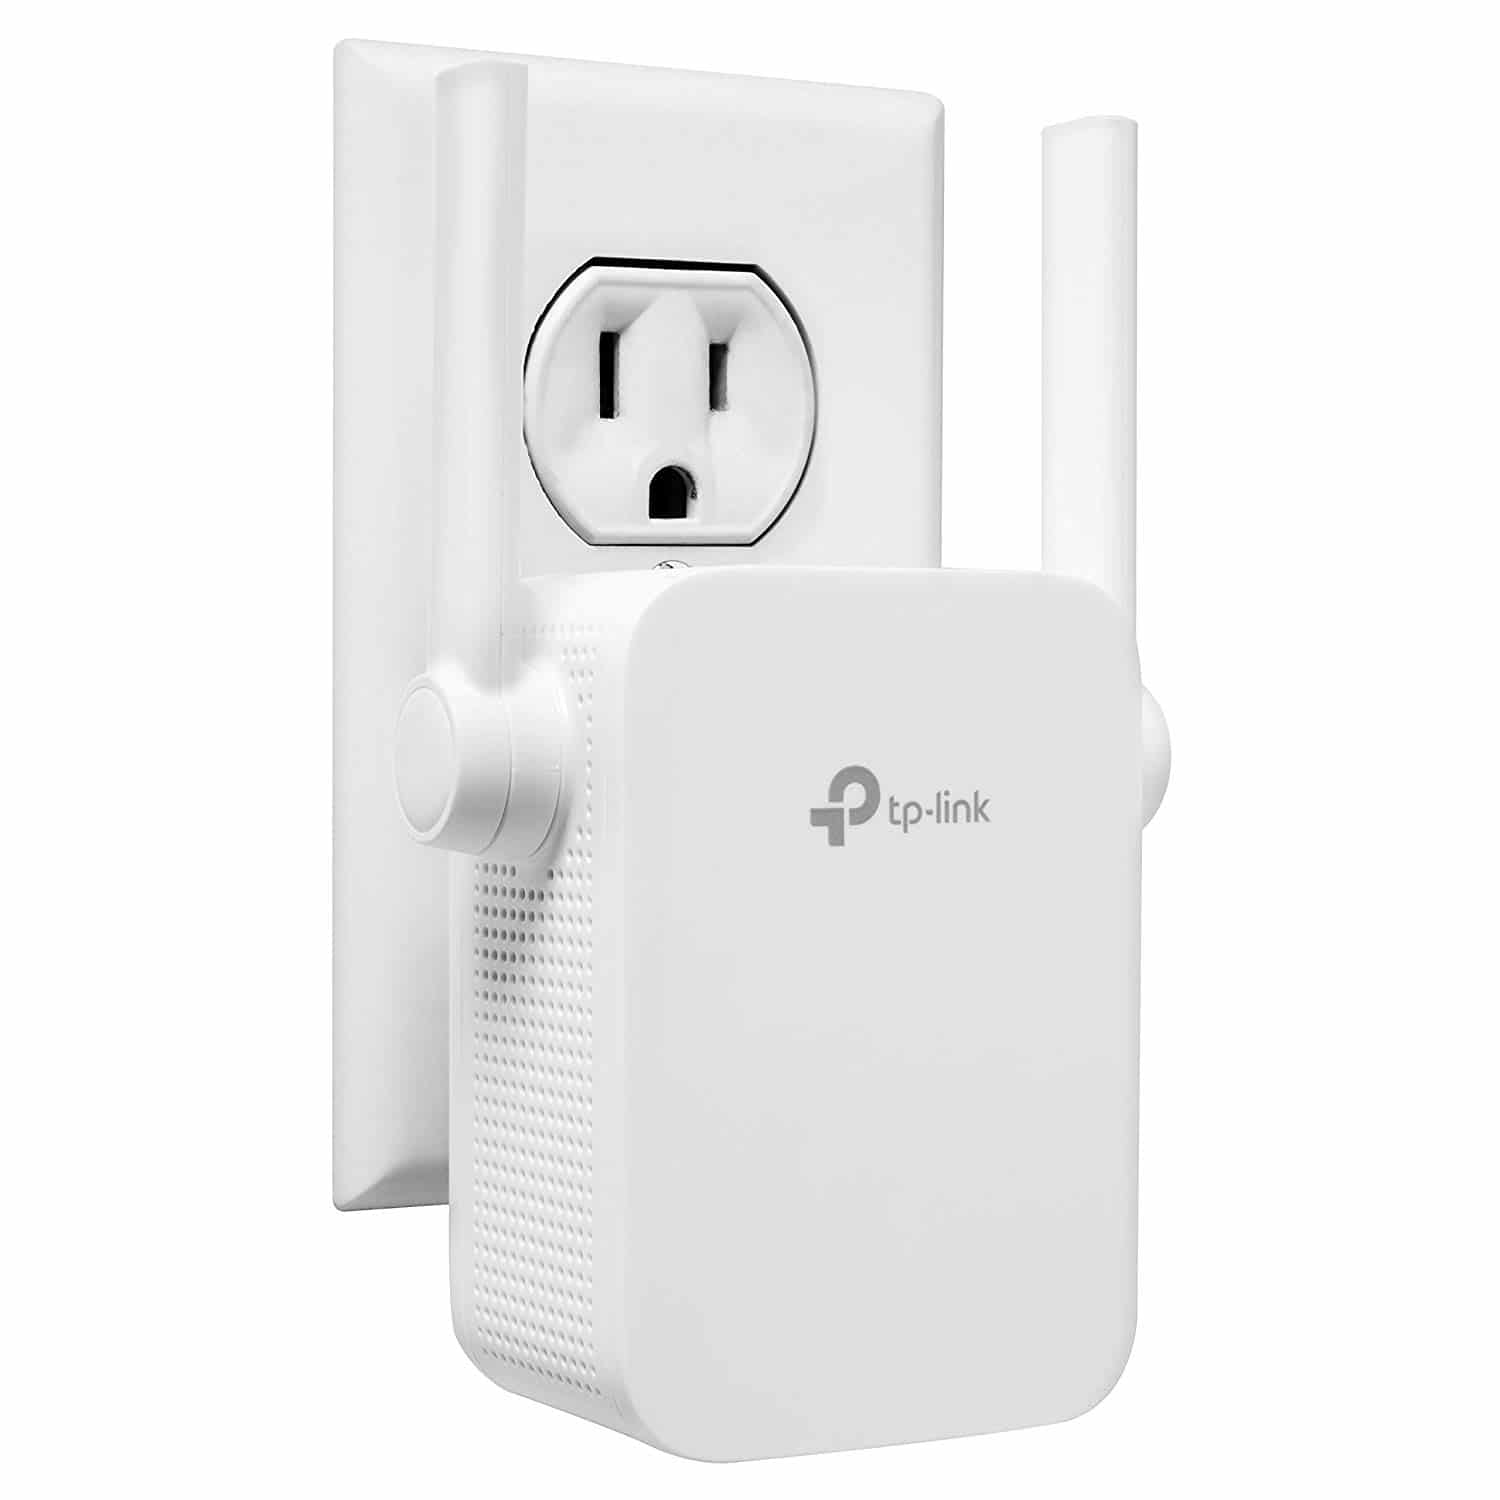 TP-Link N300 (TL-WA855RE) with External Antenna